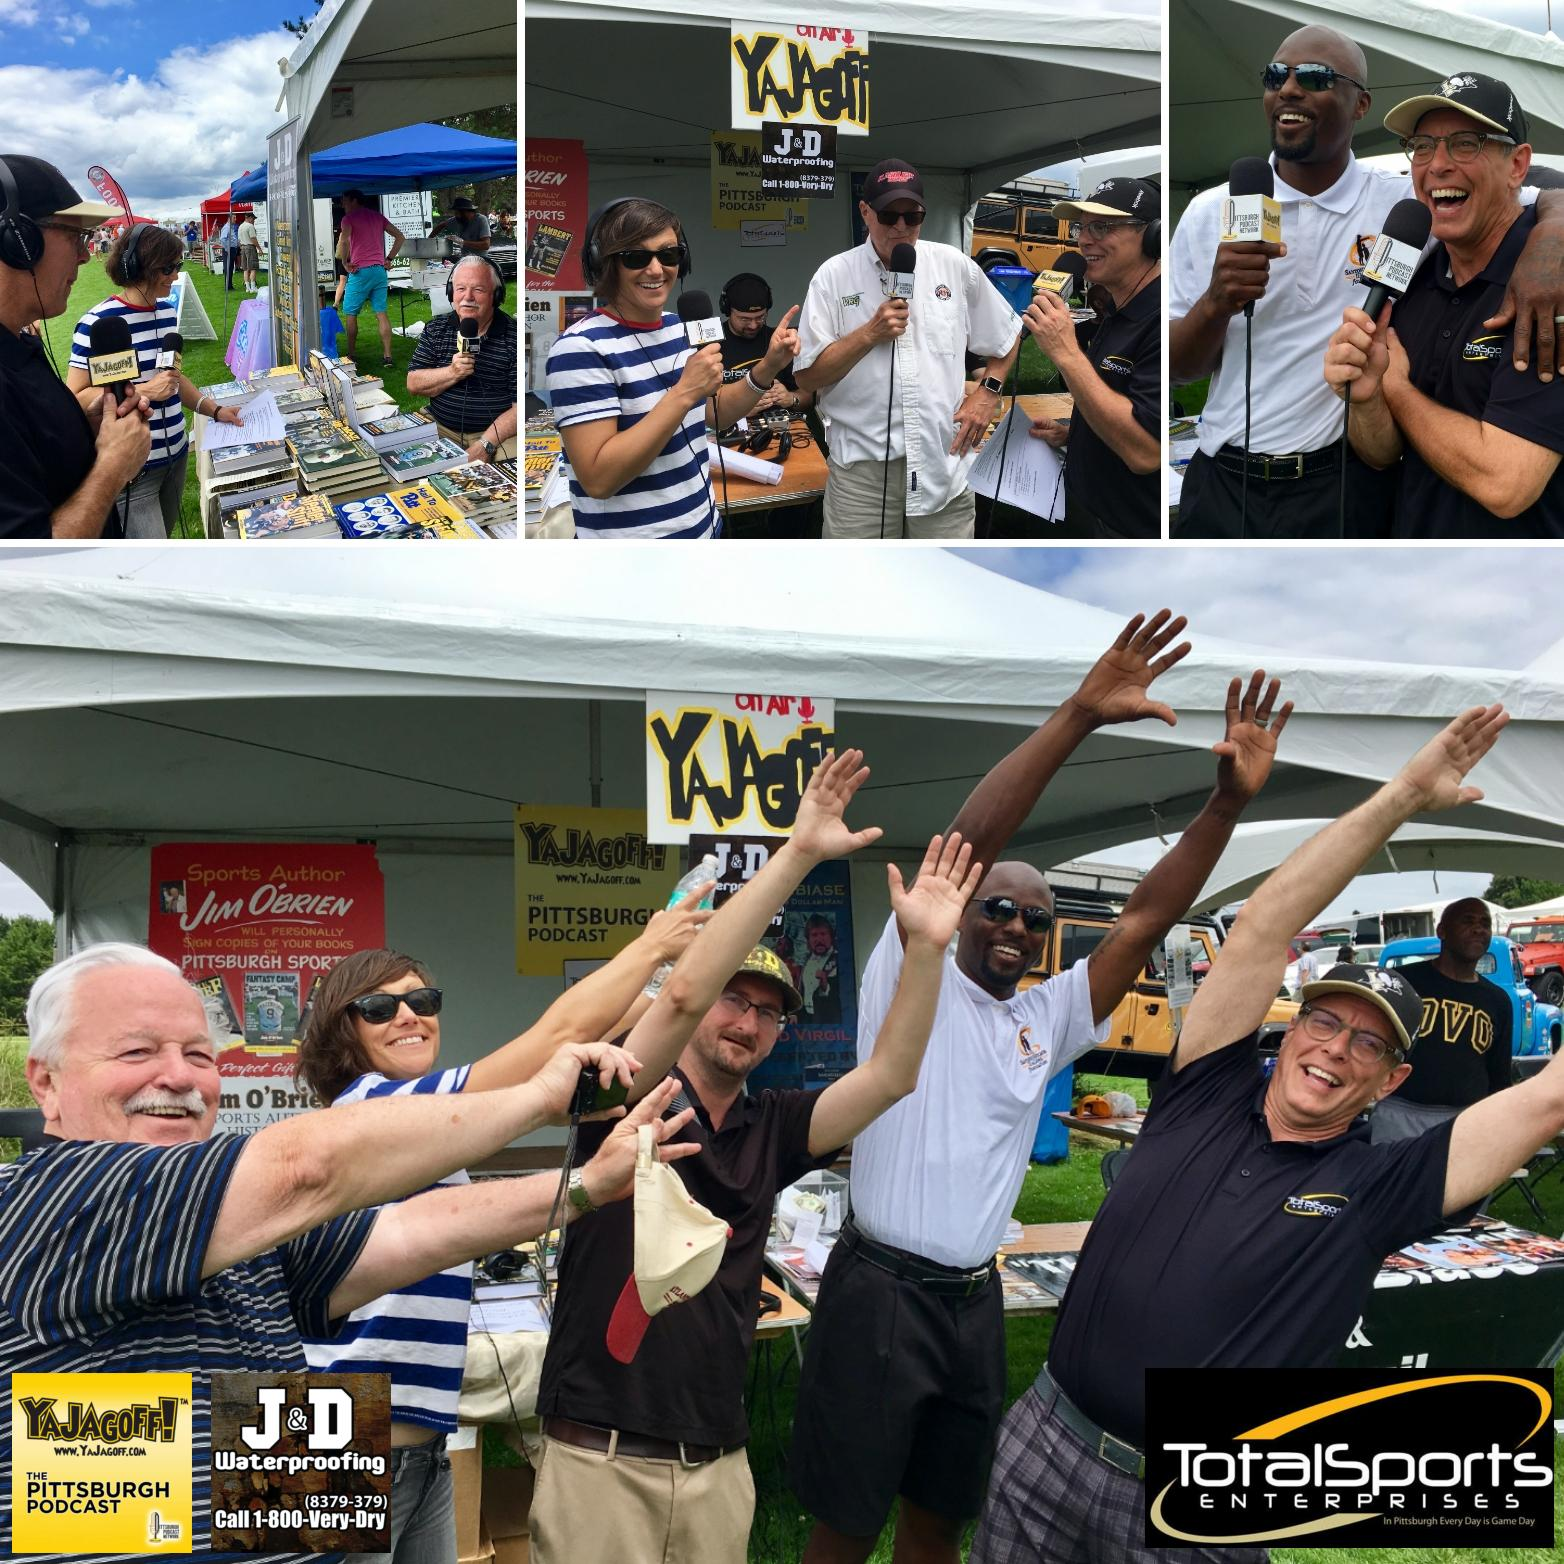 YaJagoff Podcast, Episode 78, Pittsburgh Vintage Grand Prix w Santonio Holmes